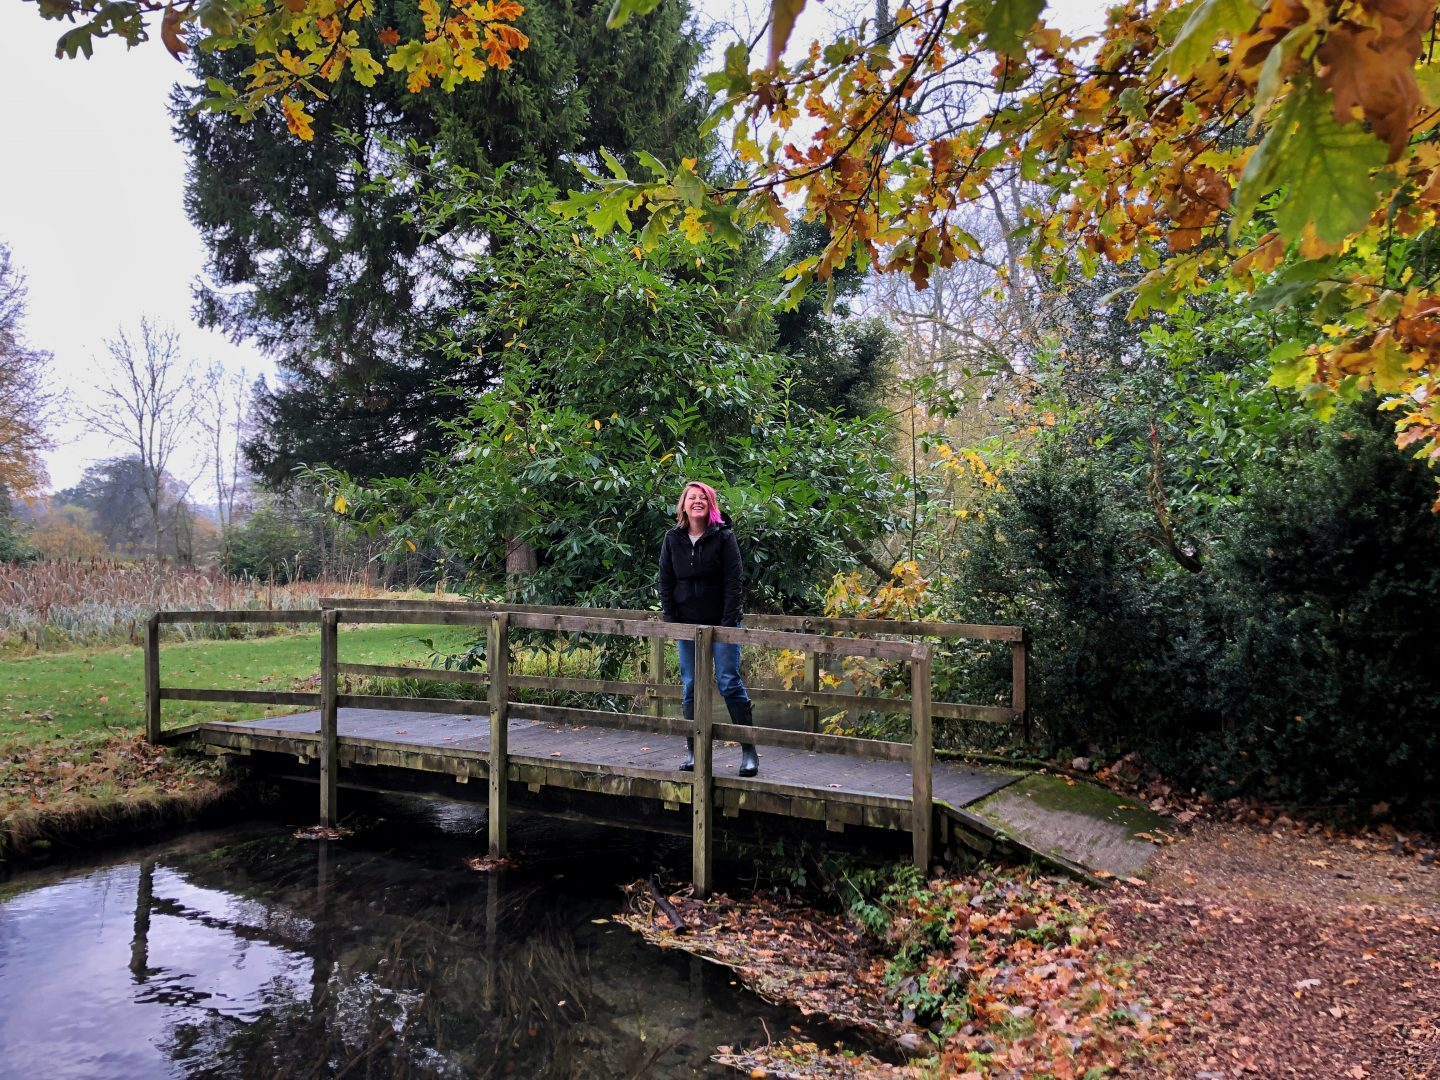 A photo of me, standing on a wooden bridge over a small river in the gardens of the Lords of the Manor hotel. The trees all around are turning yellow and orange.